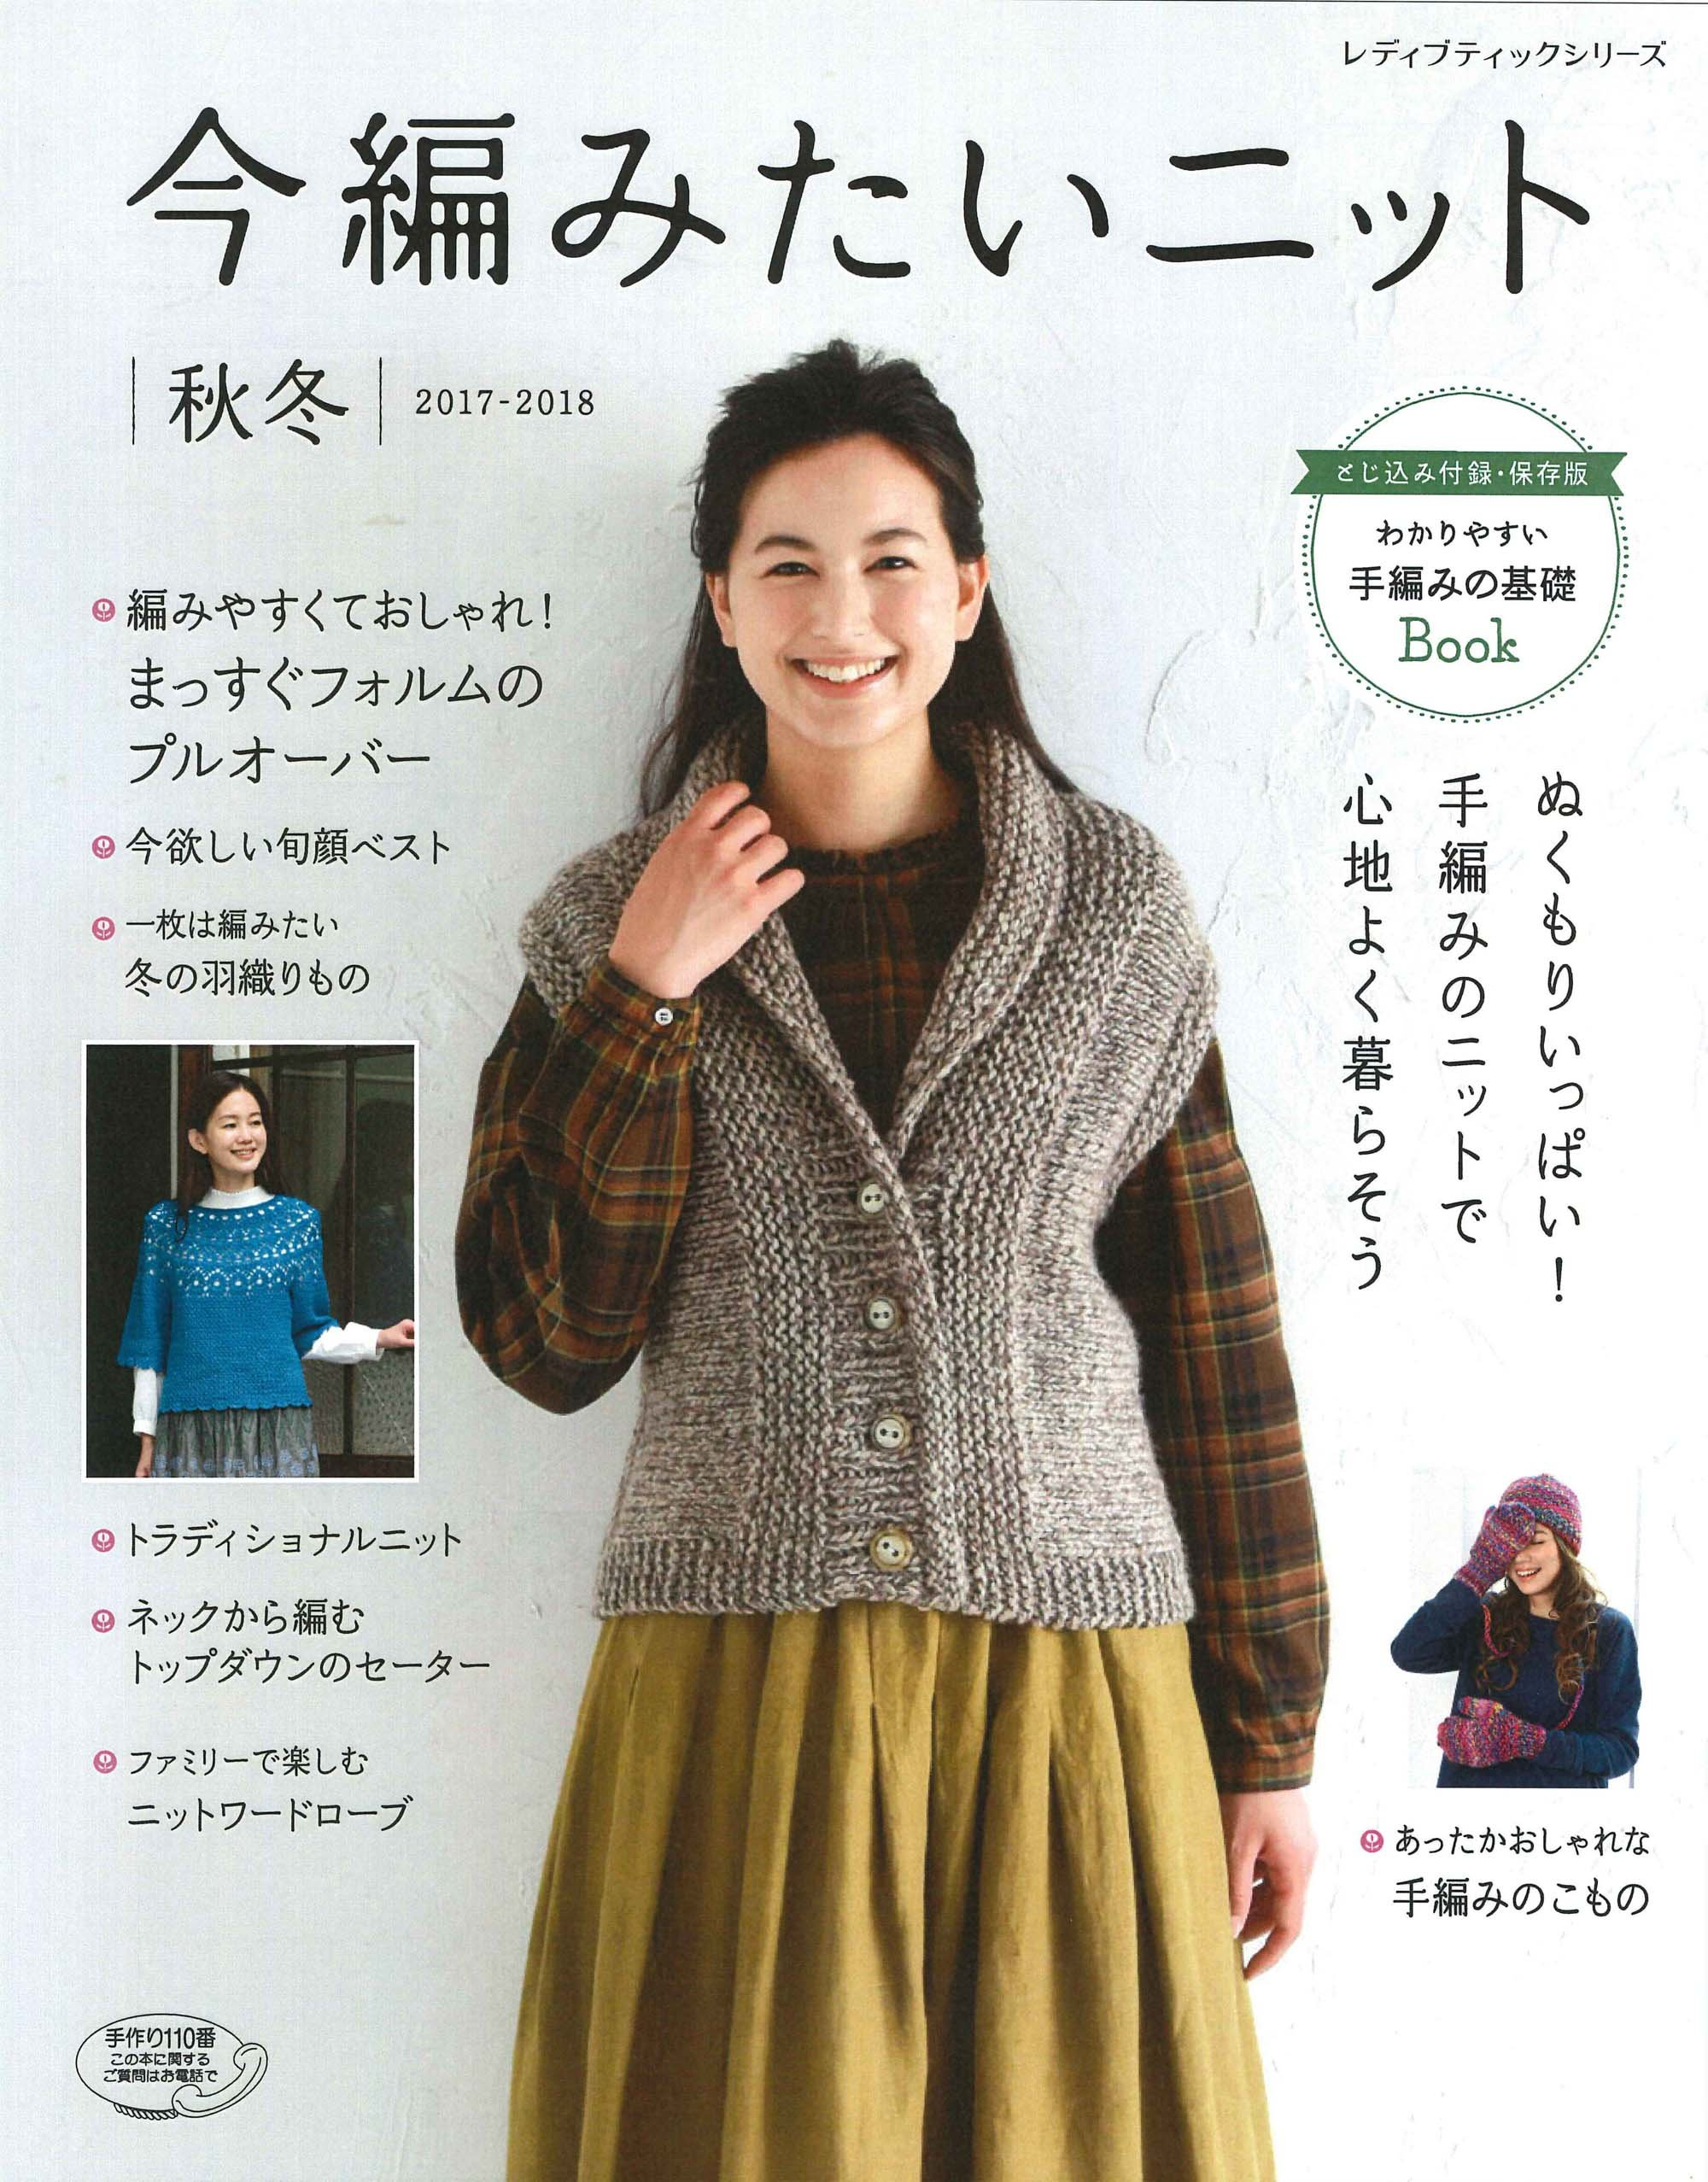 Now knit want to knit autumn-winter 2017-2018